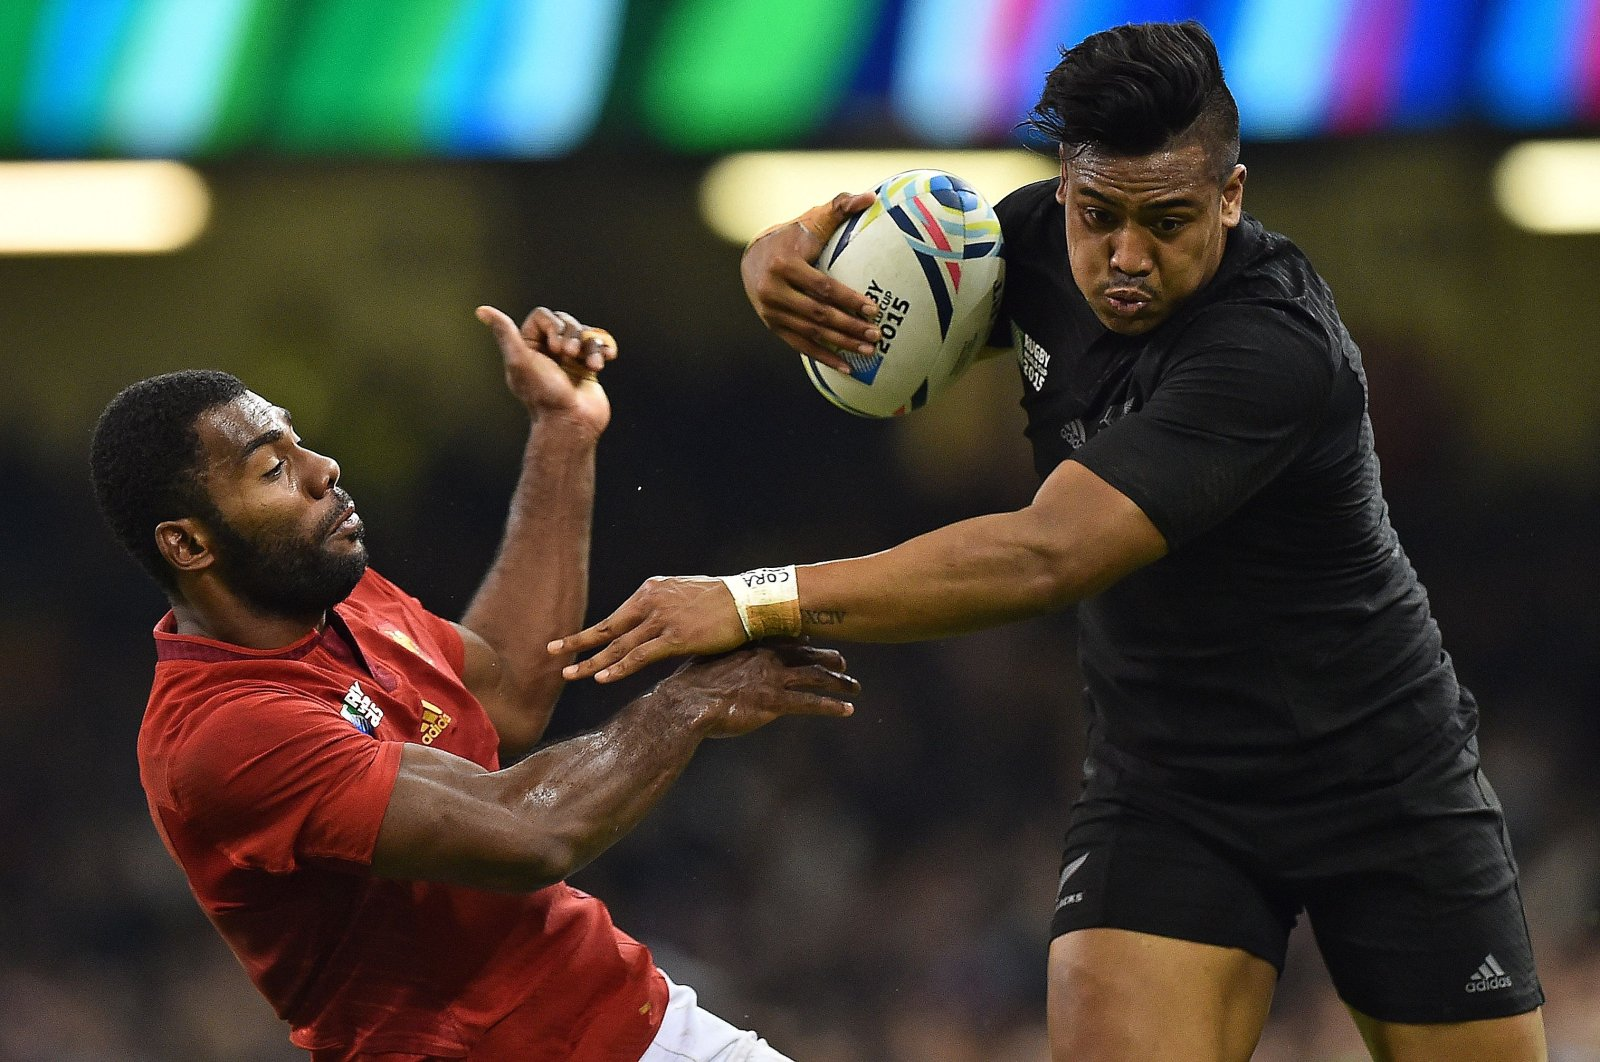 New Zealand's Julian Savea (R) pushes France's Noa Nakaitaci during a match in Cardiff, Wales, Oct. 17, 2015. (AFP Photo)